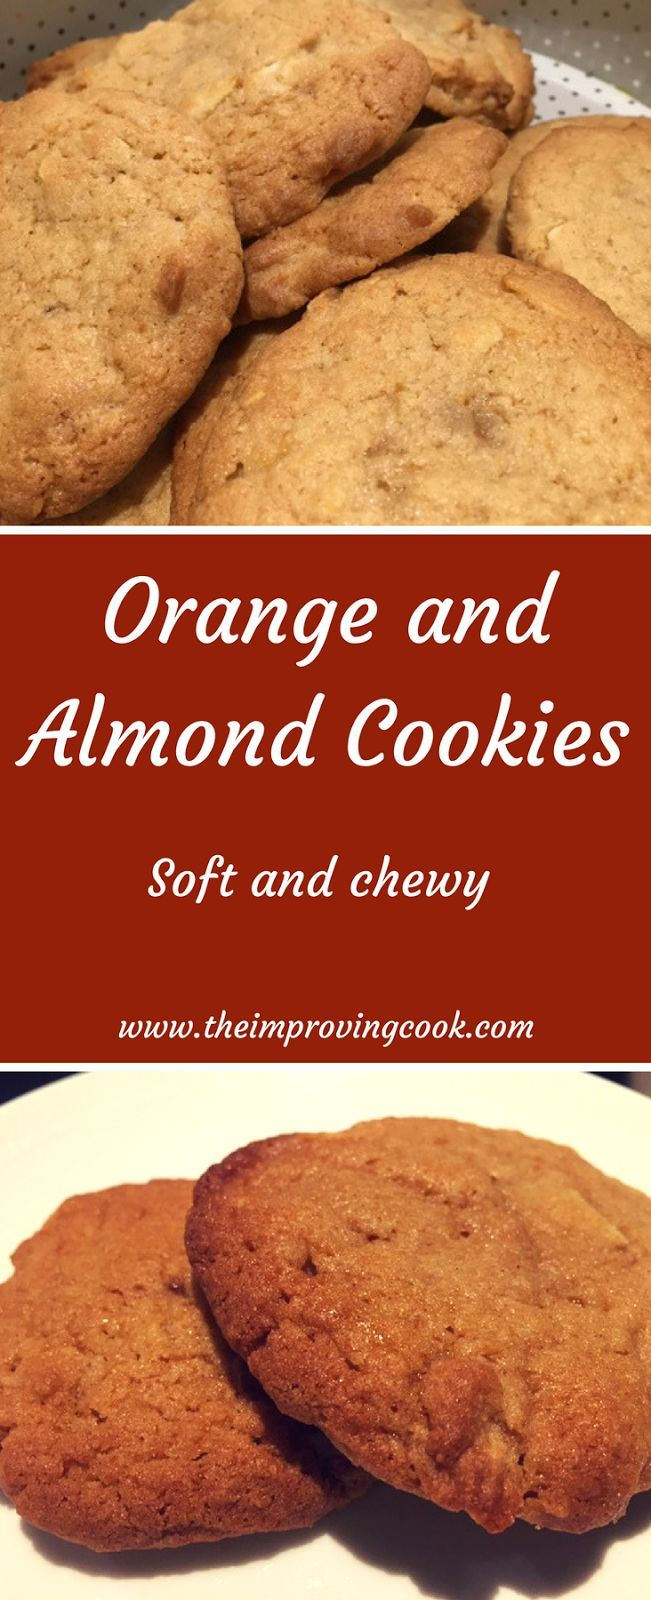 Orange and Almond Cookies- soft, chewy orange curd cookies with flaked almonds.